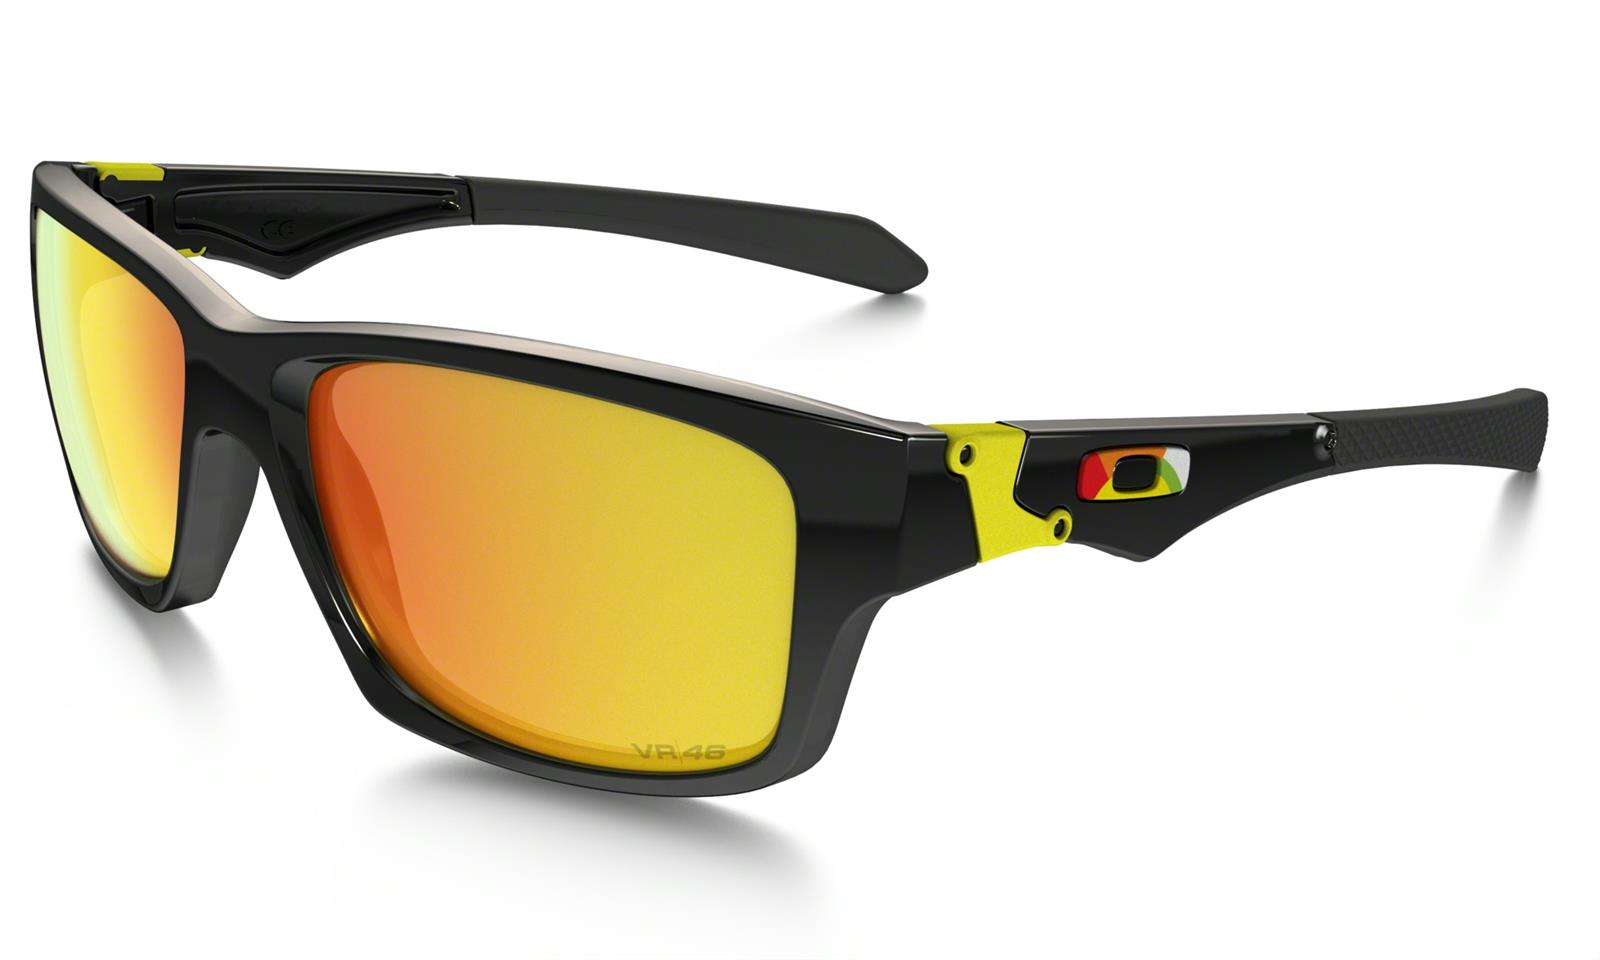 26796aa5d73 Oakley Jupiter Squared Valentino Rossi Signature Series Sunglasses OO9135-11  - Free Shipping on Orders Over  99 at Summit Racing